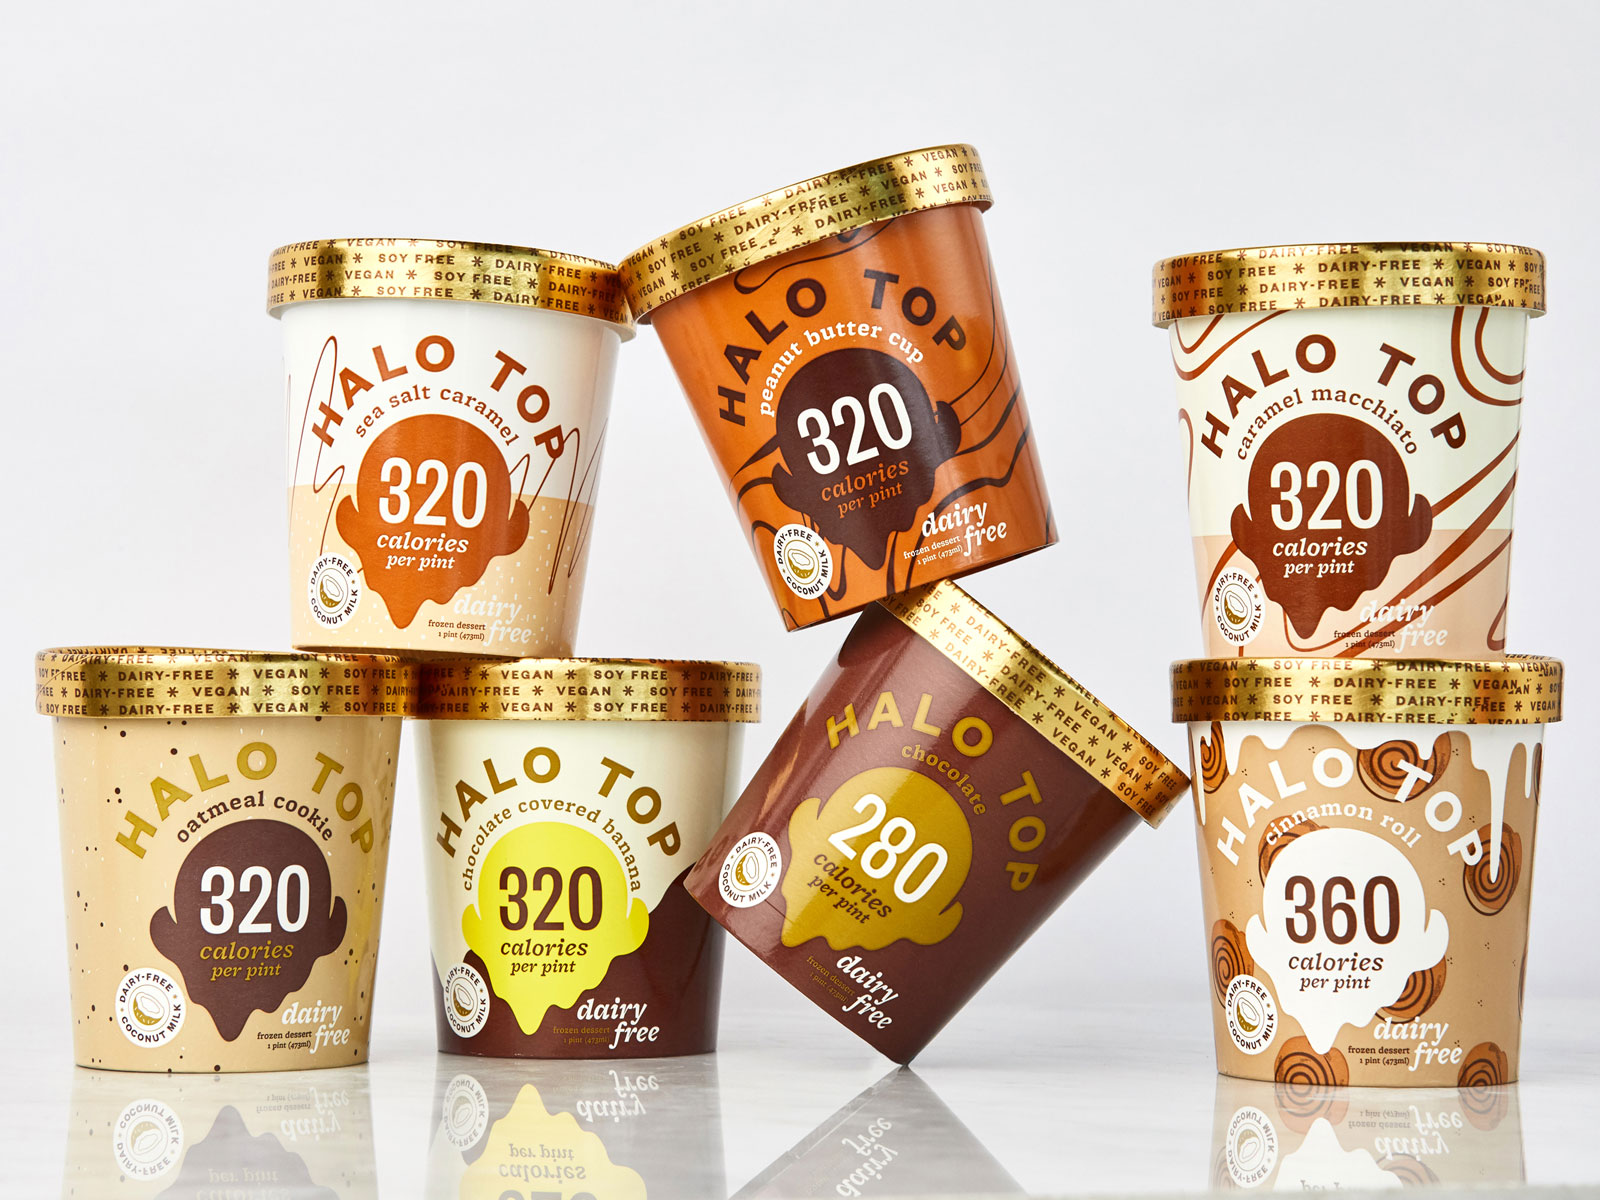 Halo Top Just Released A New Line Of Vegan Ice Creams